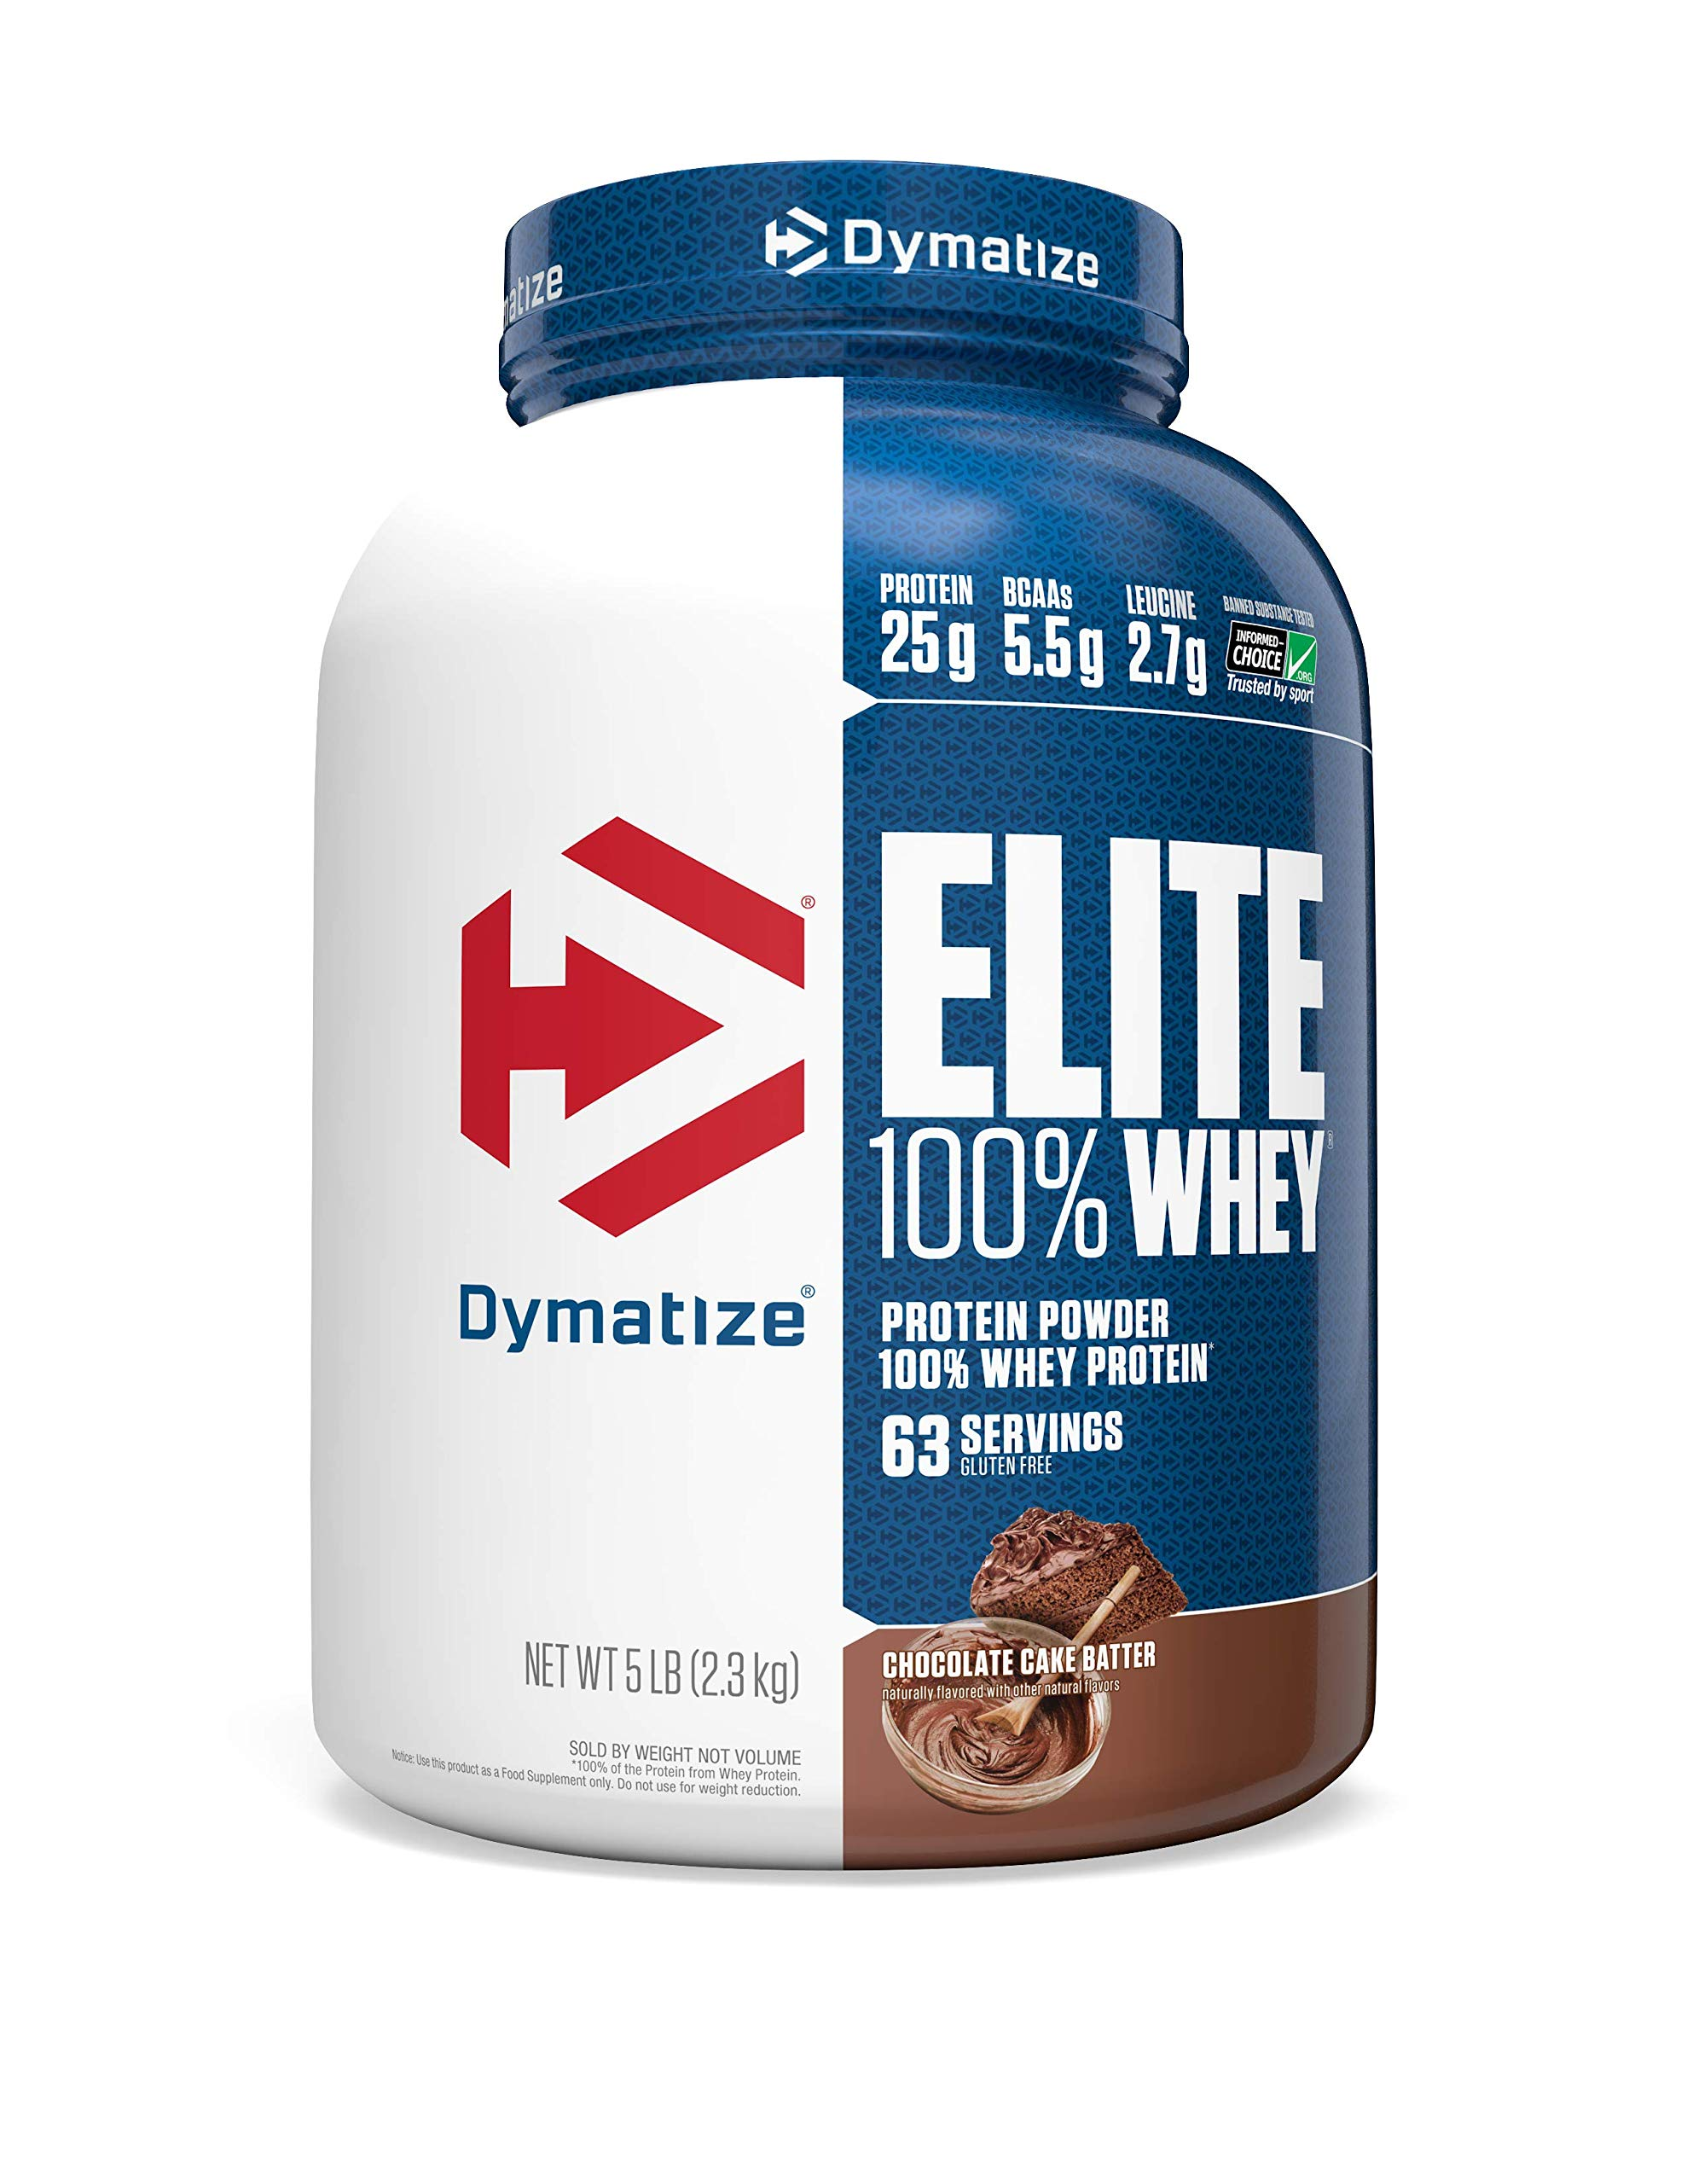 Dymatize Elite 100% Whey Protein Powder, Take Pre Workout or Post Workout, Quick Absorbing & Fast Digesting, Chocolate Cake Batter, 5 Pound by Dymatize